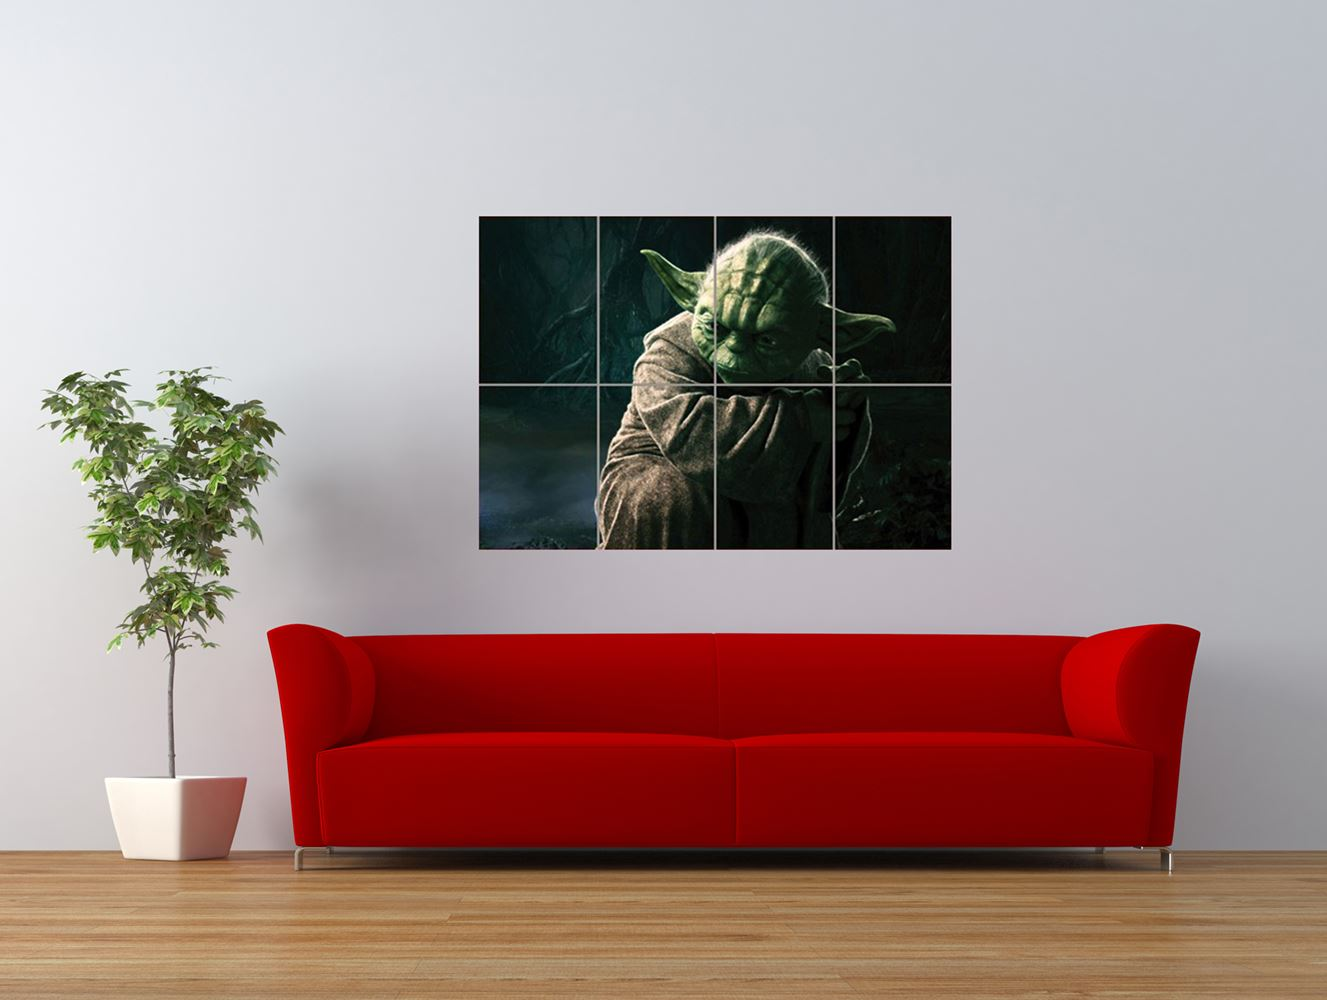 jedi master yoda star wars character giant art print panel poster nor0524 ebay. Black Bedroom Furniture Sets. Home Design Ideas